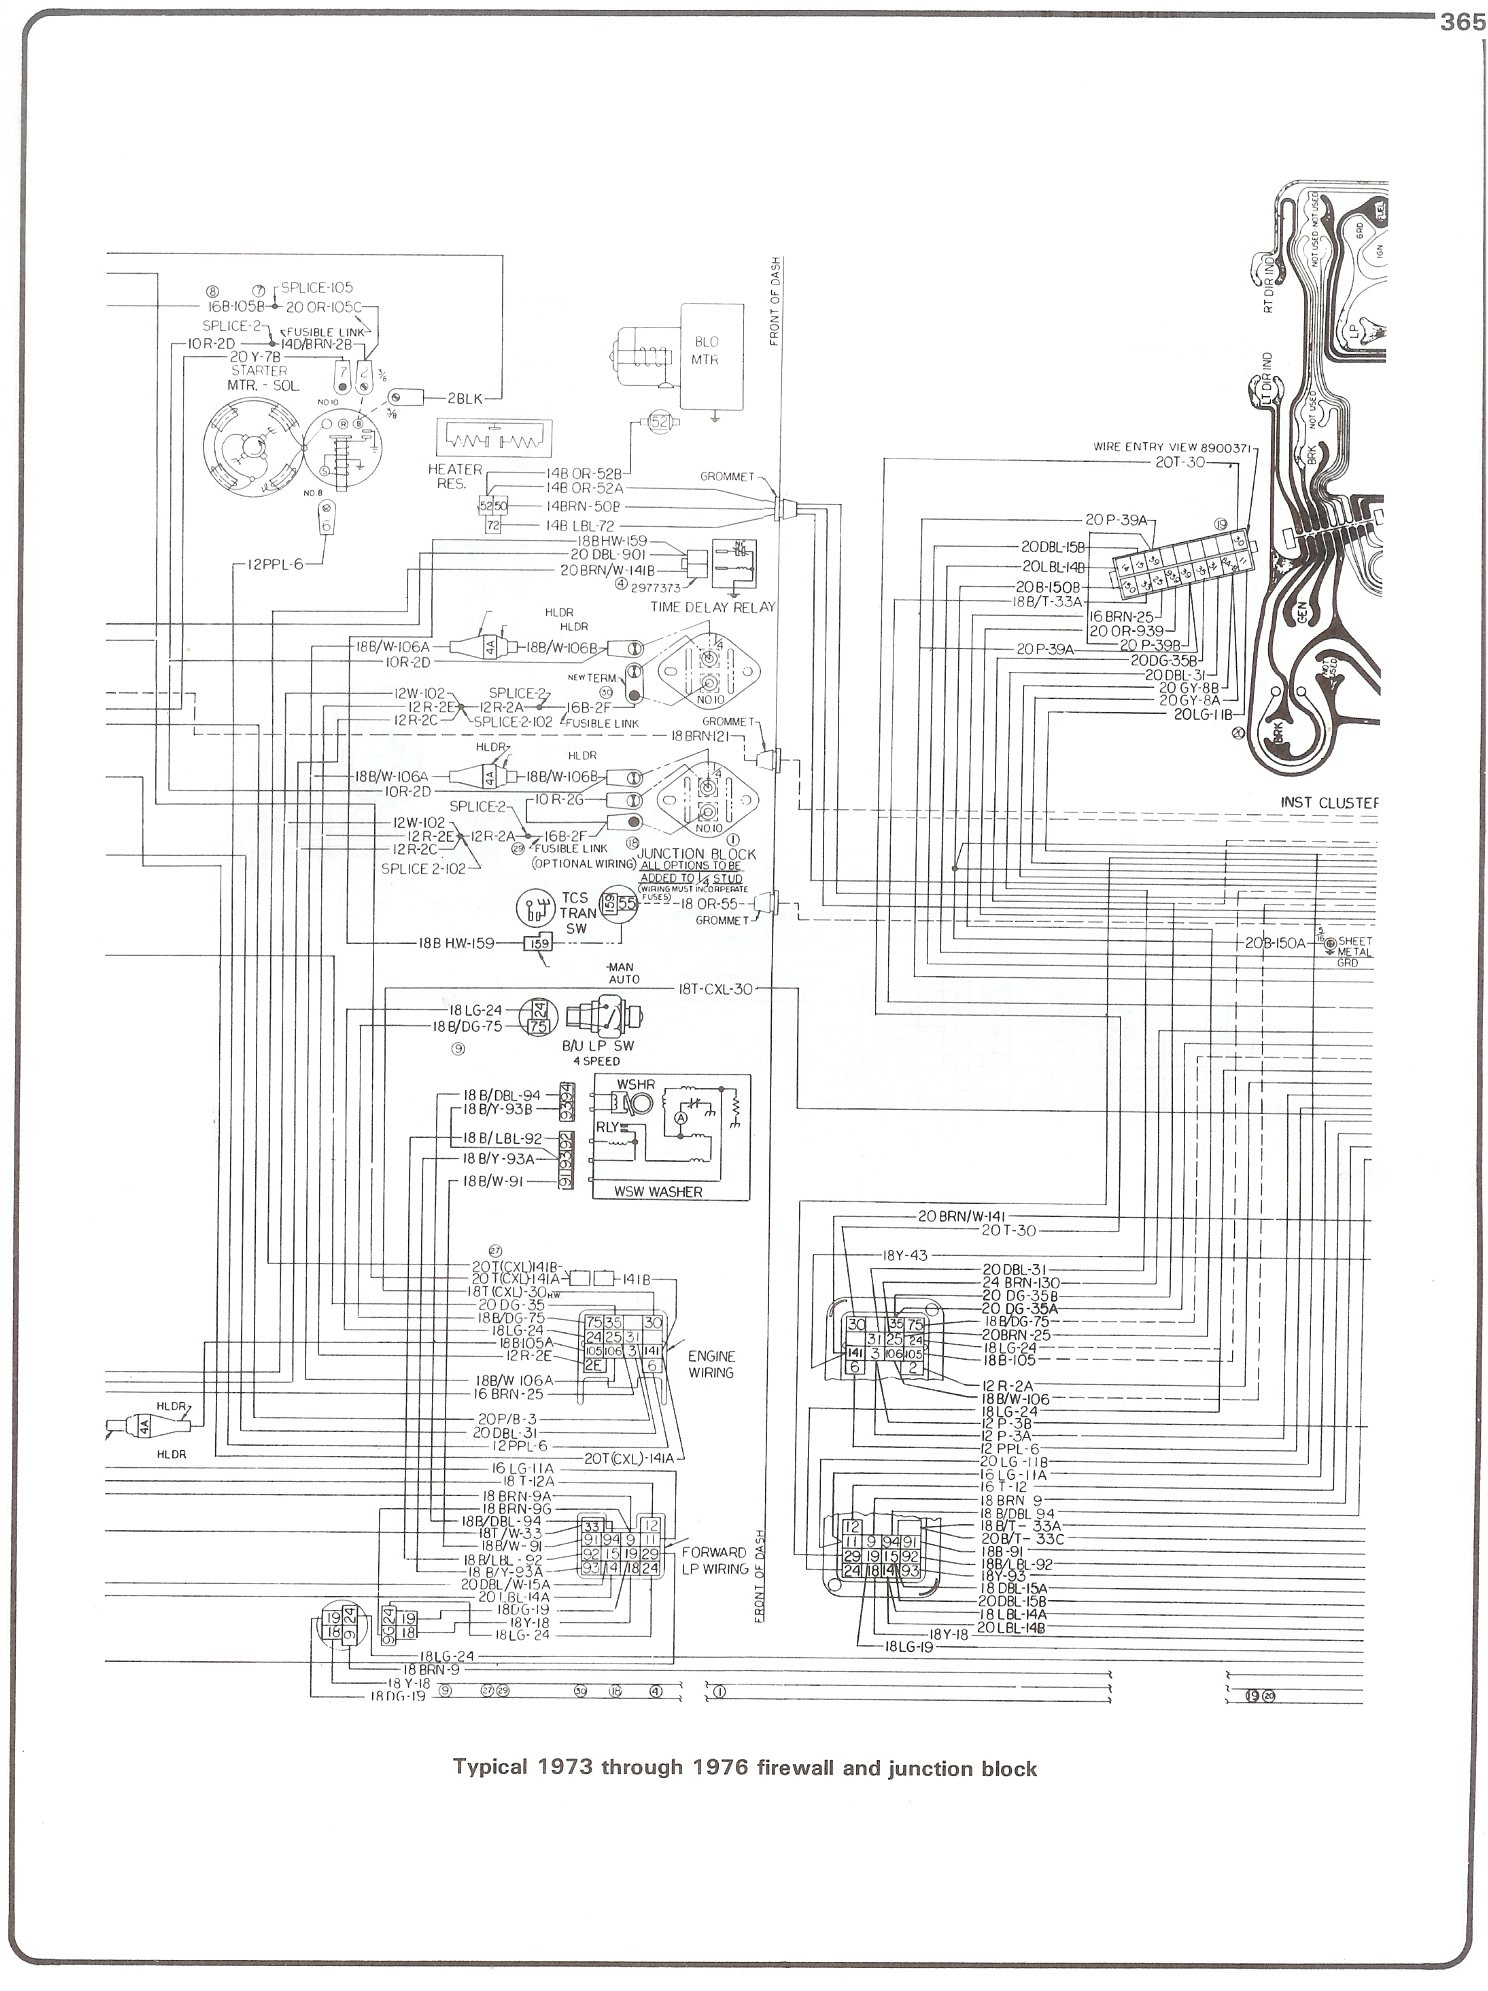 1993 Chevy 454 Engine Wiring Diagram - Data Wiring Diagram on 7.4 mercruiser engine diagram, 1988 chevy 4x4 diagram, big block engine diagram, 1988 chevy motor diagram, 1988 chevy s10 pickup, 1988 chevy 7.4l engine diagram, 96 gmc engine diagram, 1988 chevy truck engine diagram, 1988 chevy fuel pump diagram, 1988 chevy 350 engine diagram,